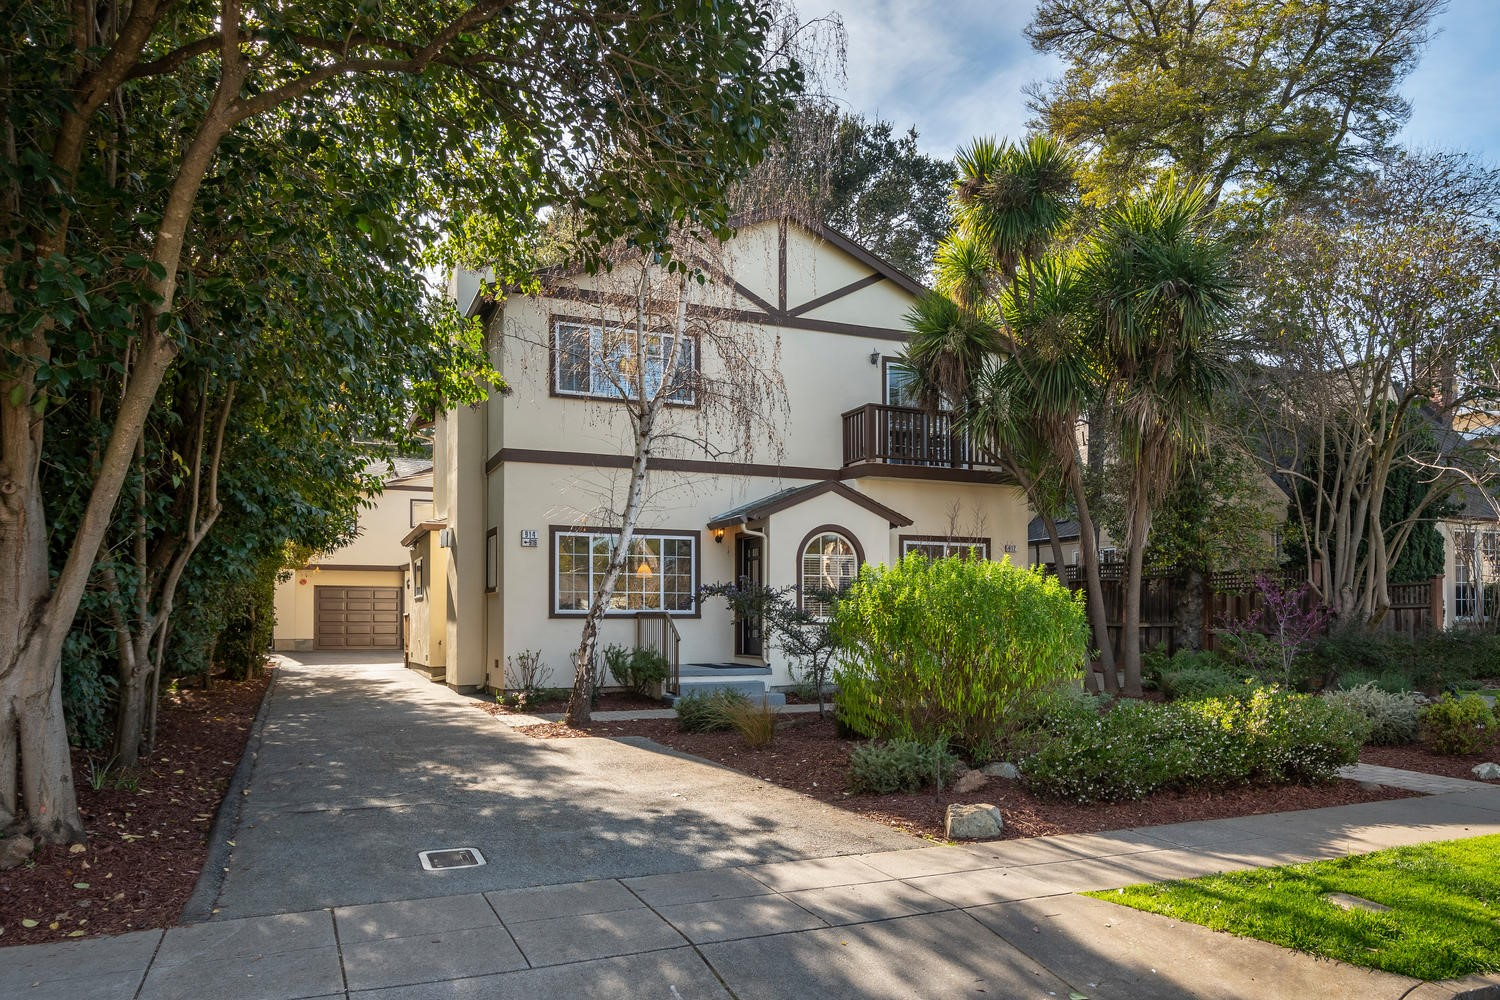 SOLD: 914 Palm Ave, San Mateo, CA 94401